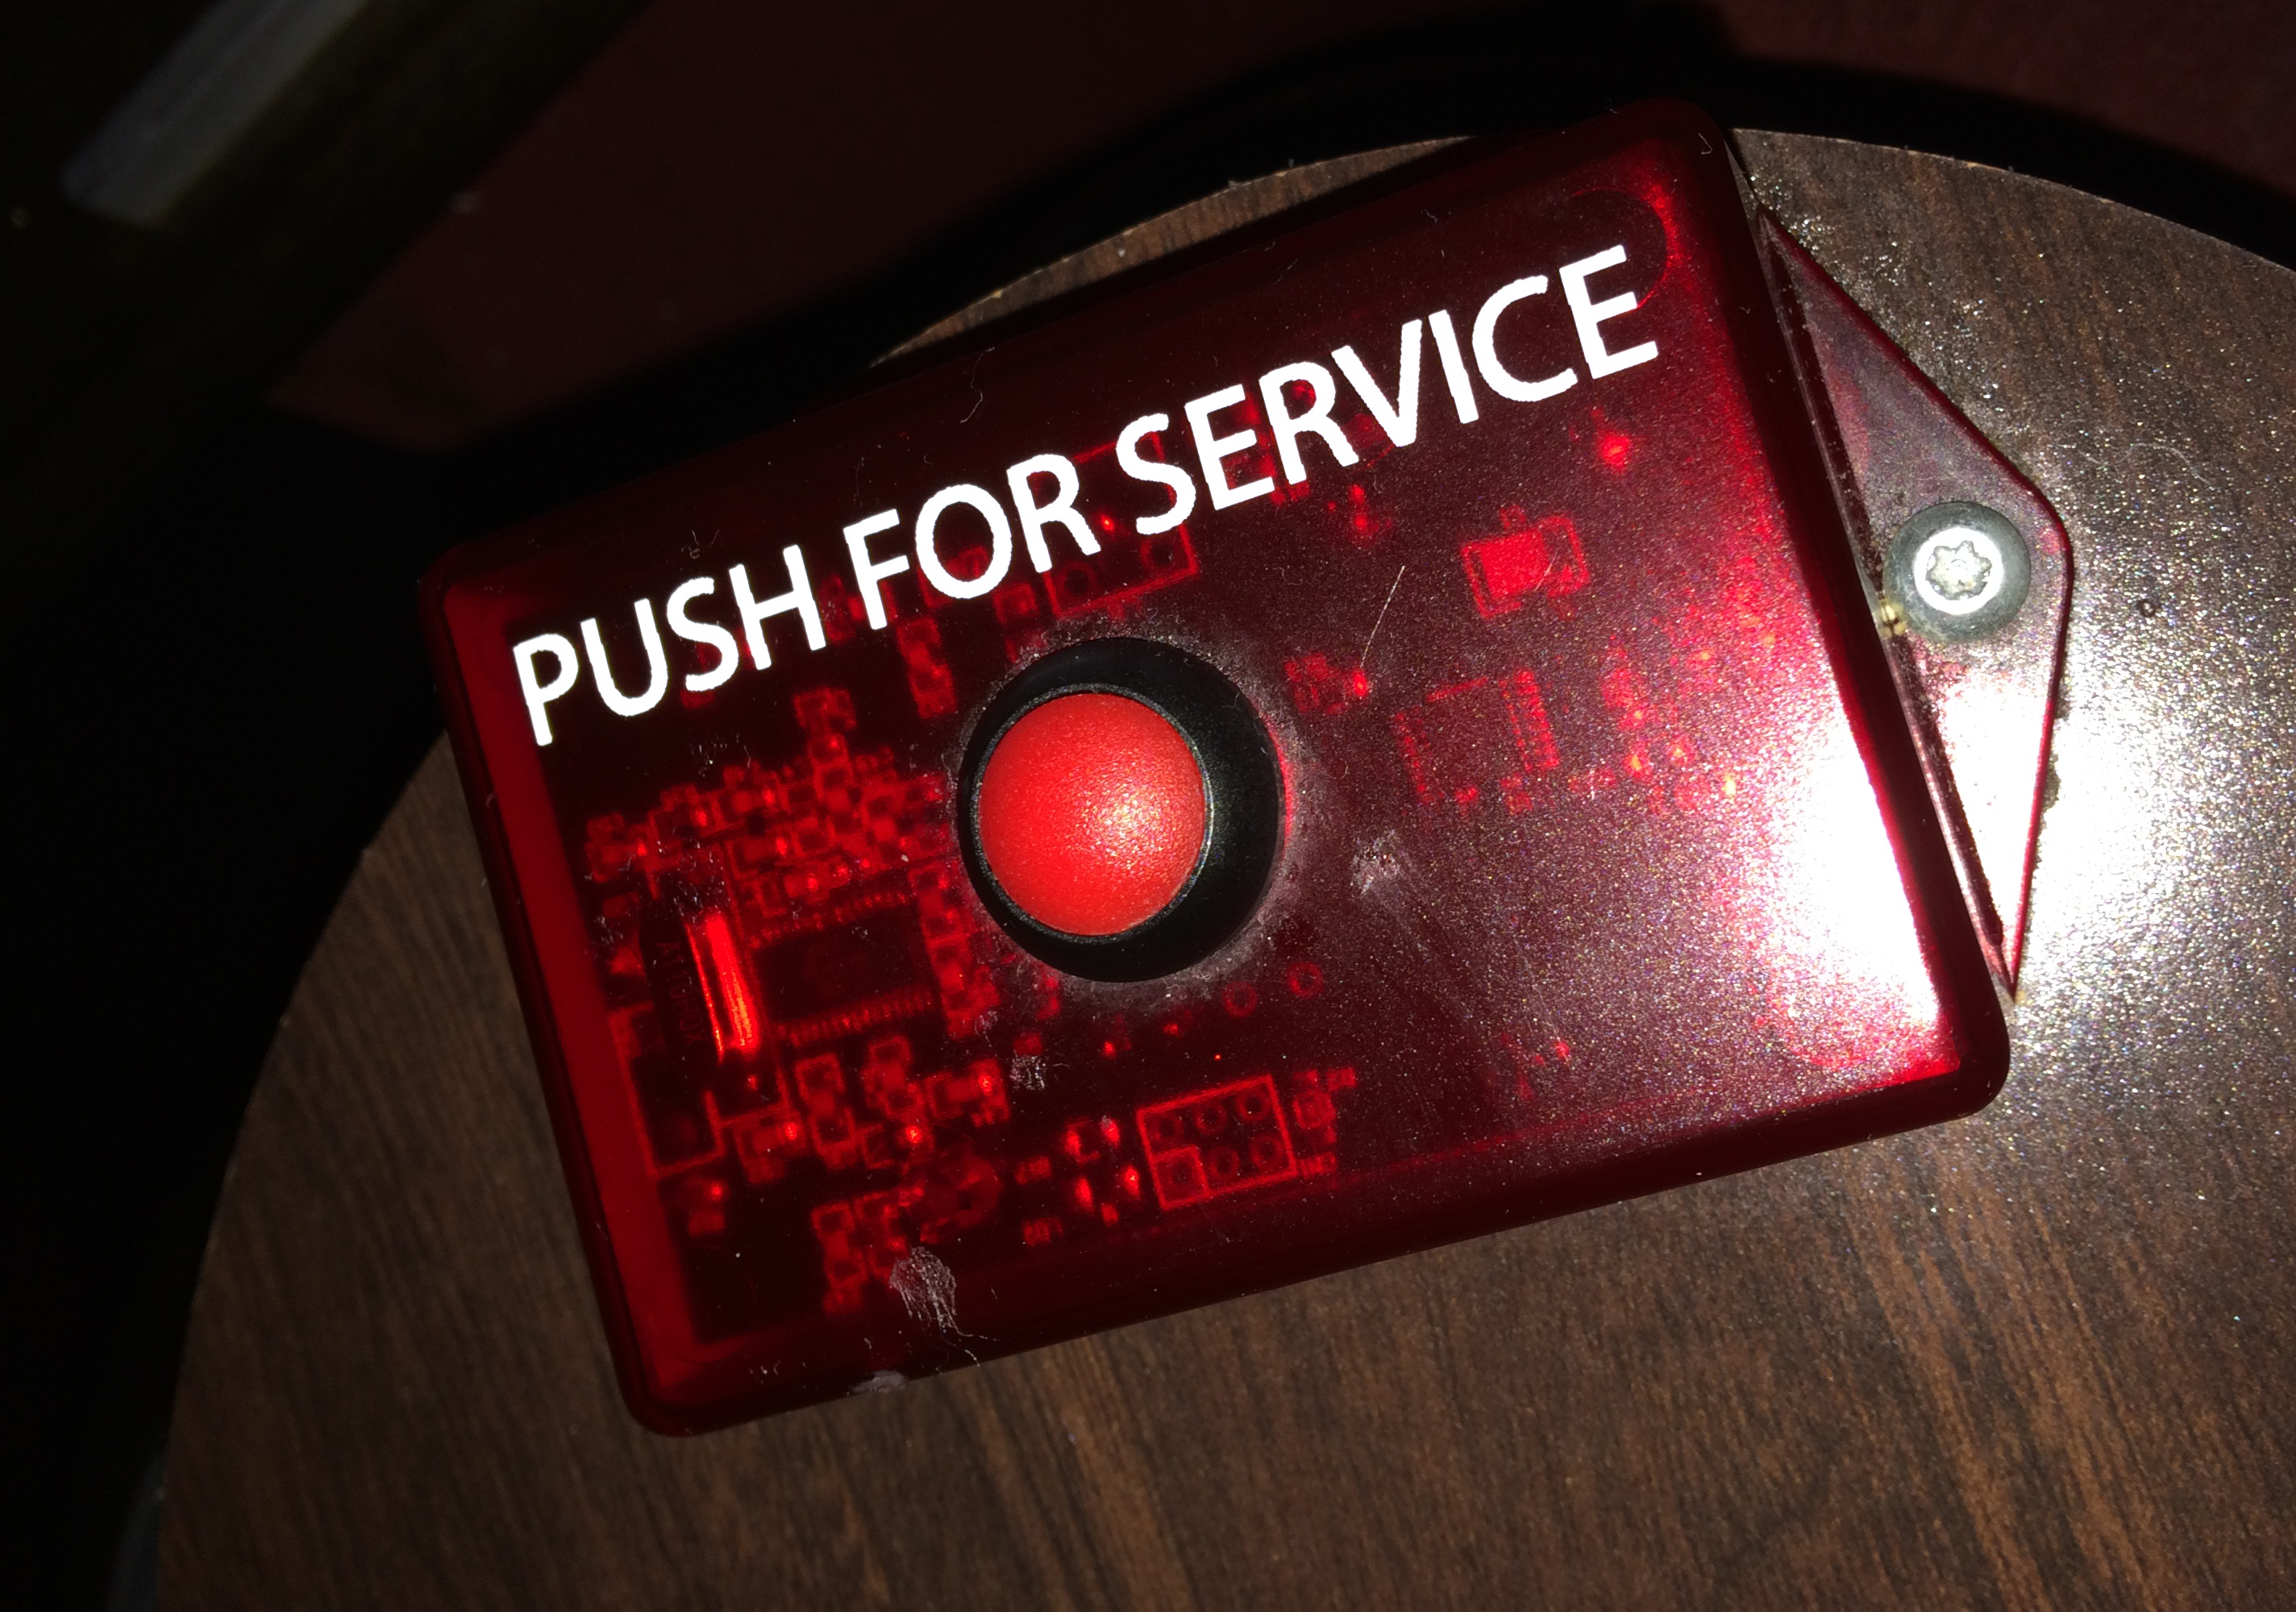 The button for us to push for service.